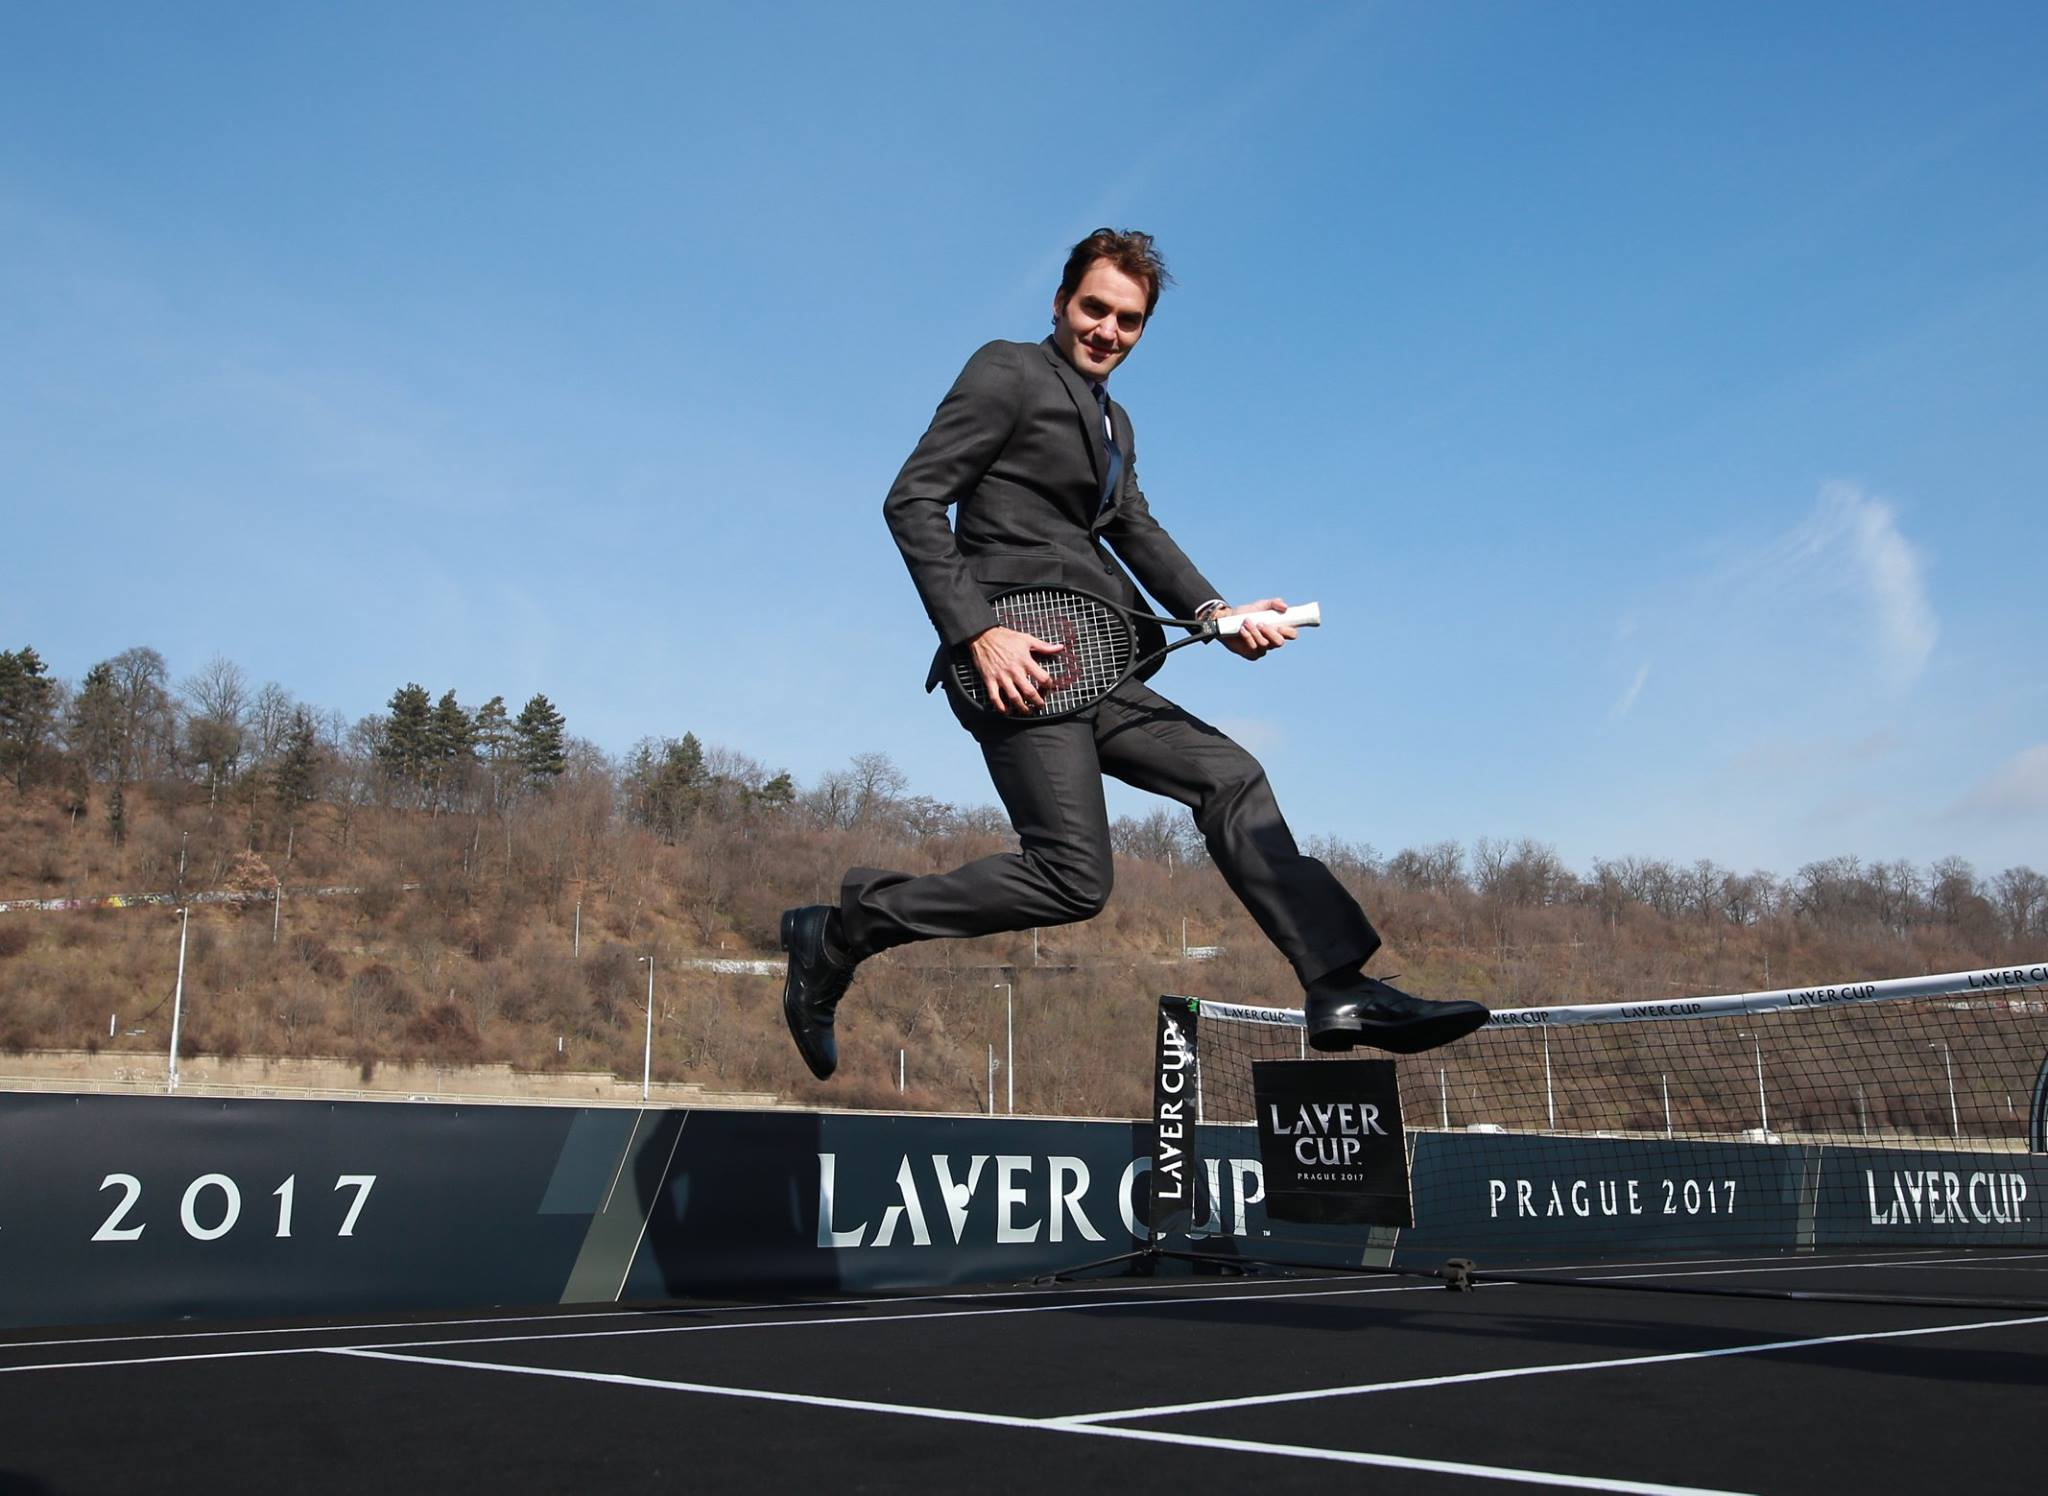 WATCH: Federer and Berdych Start Laver Cup Countdown